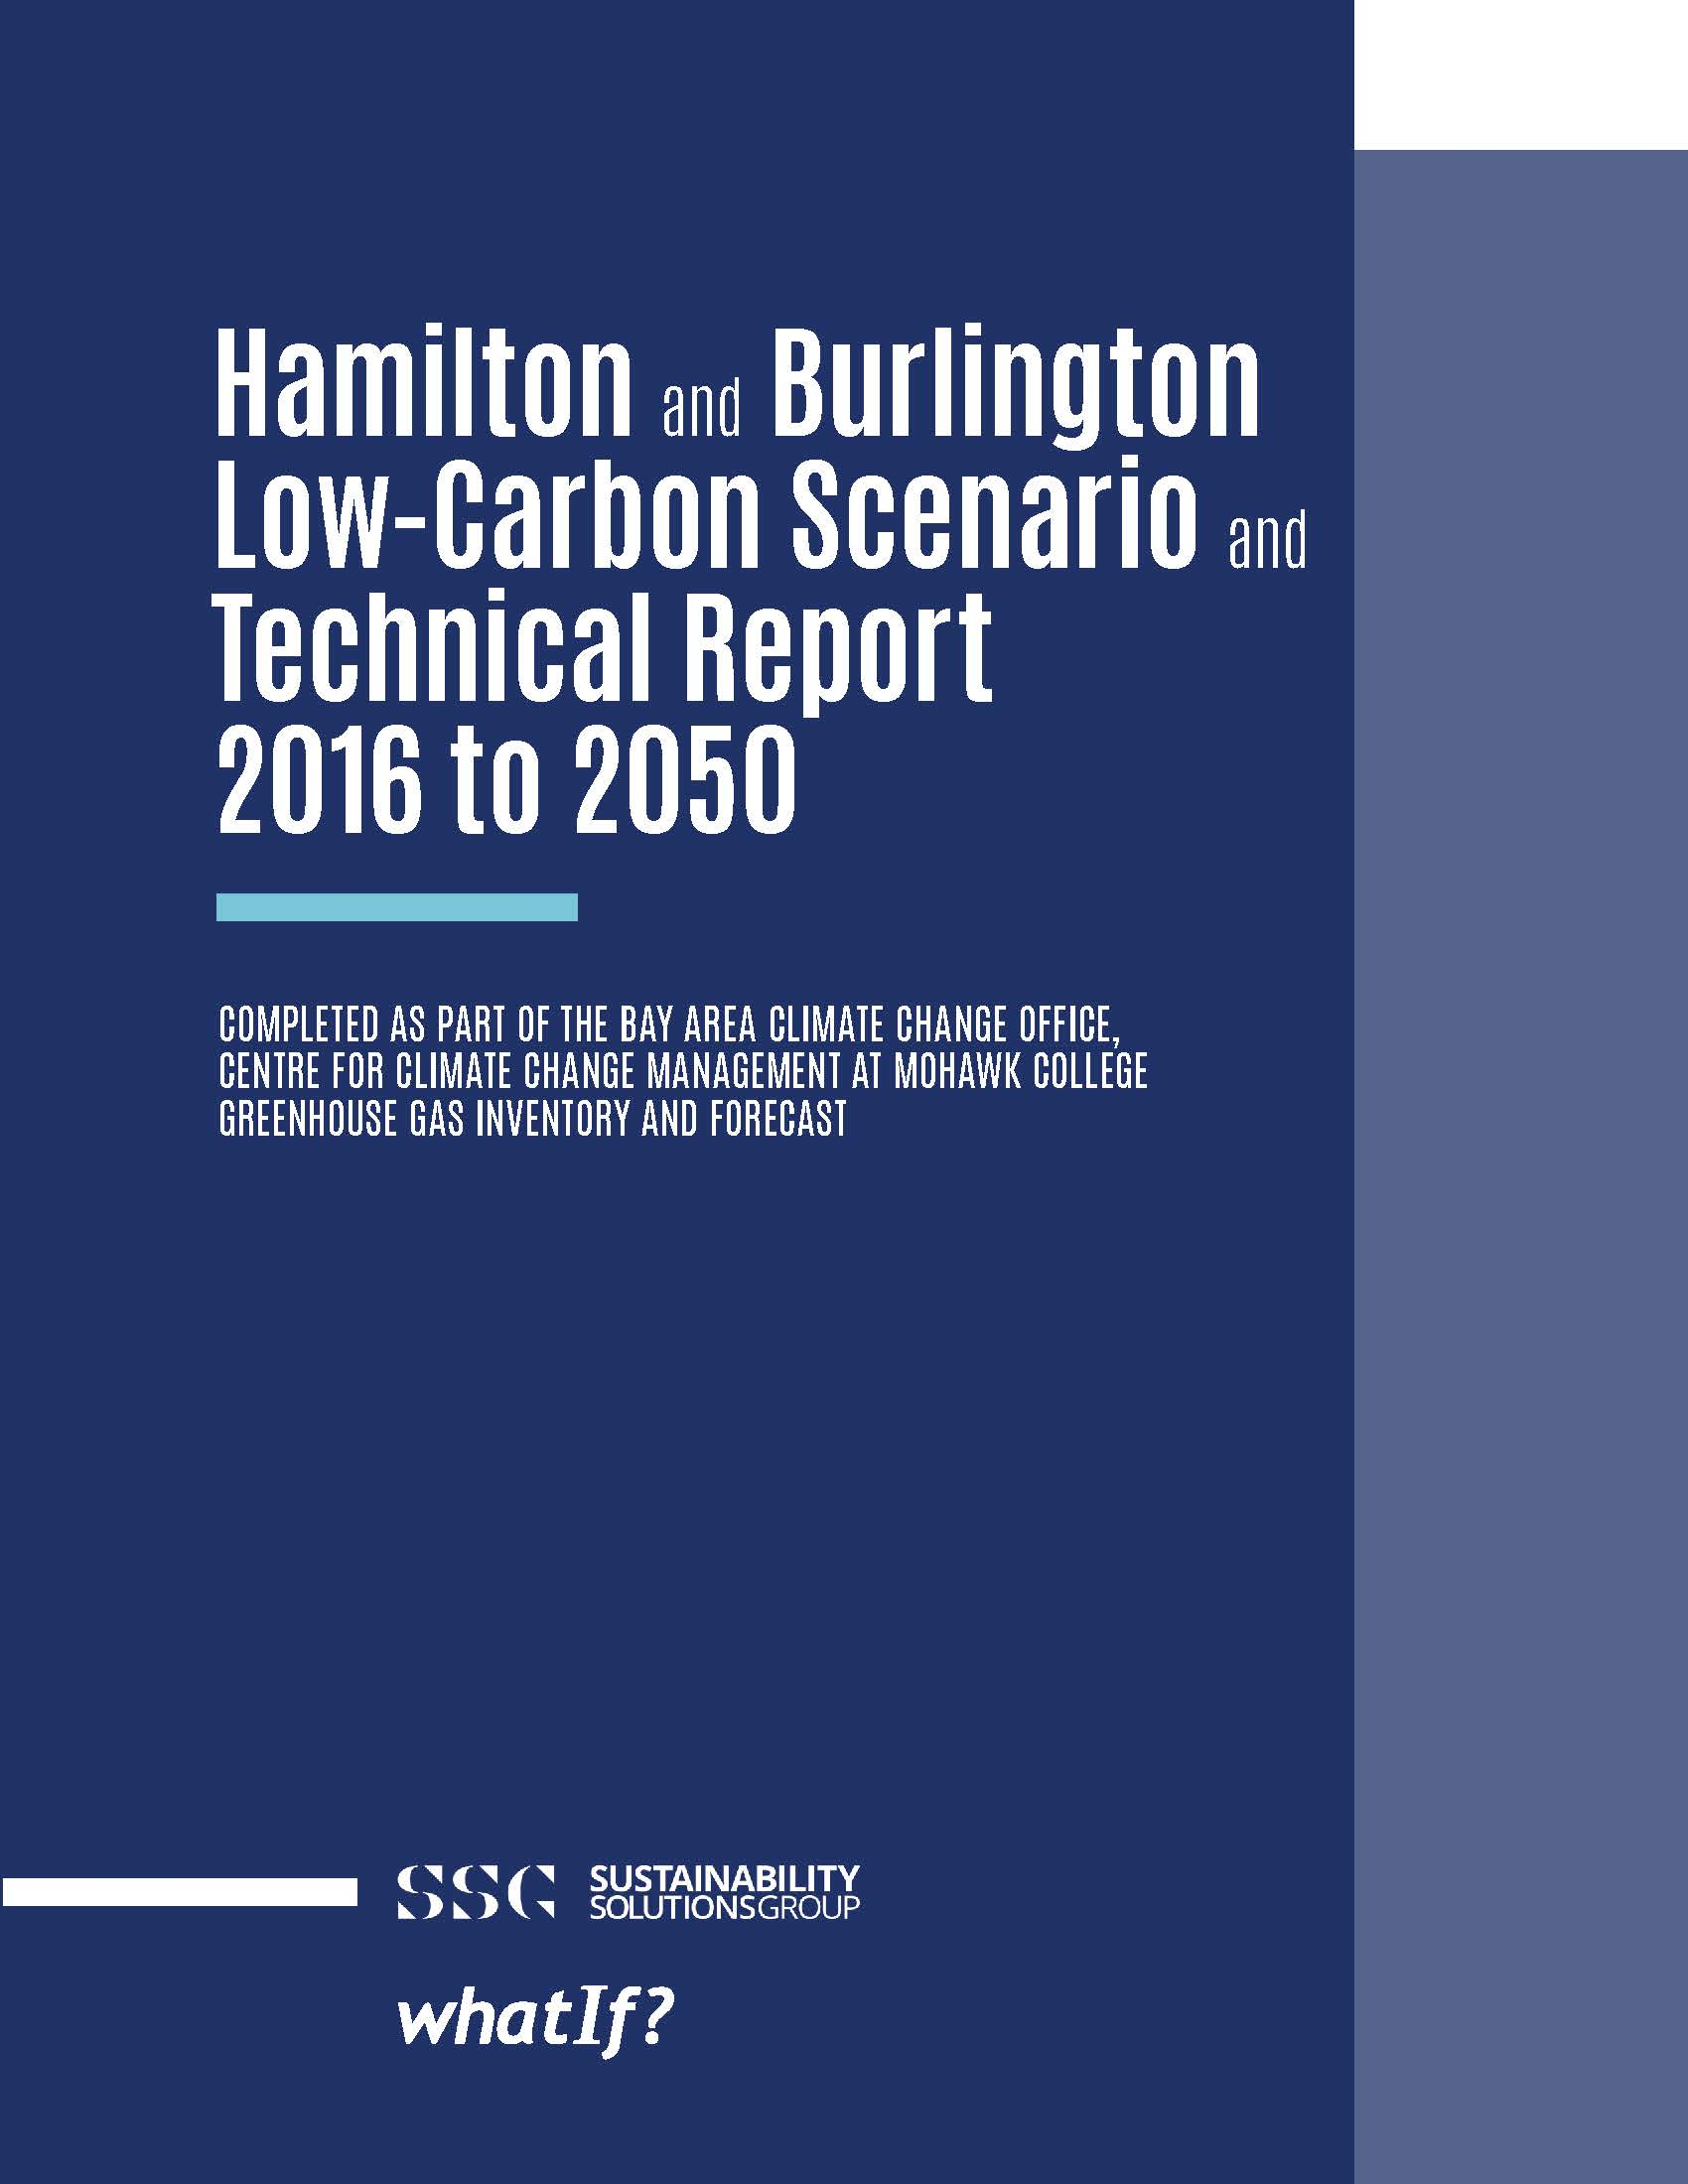 Hamilton-Burlington Technical Report Cover.jpg